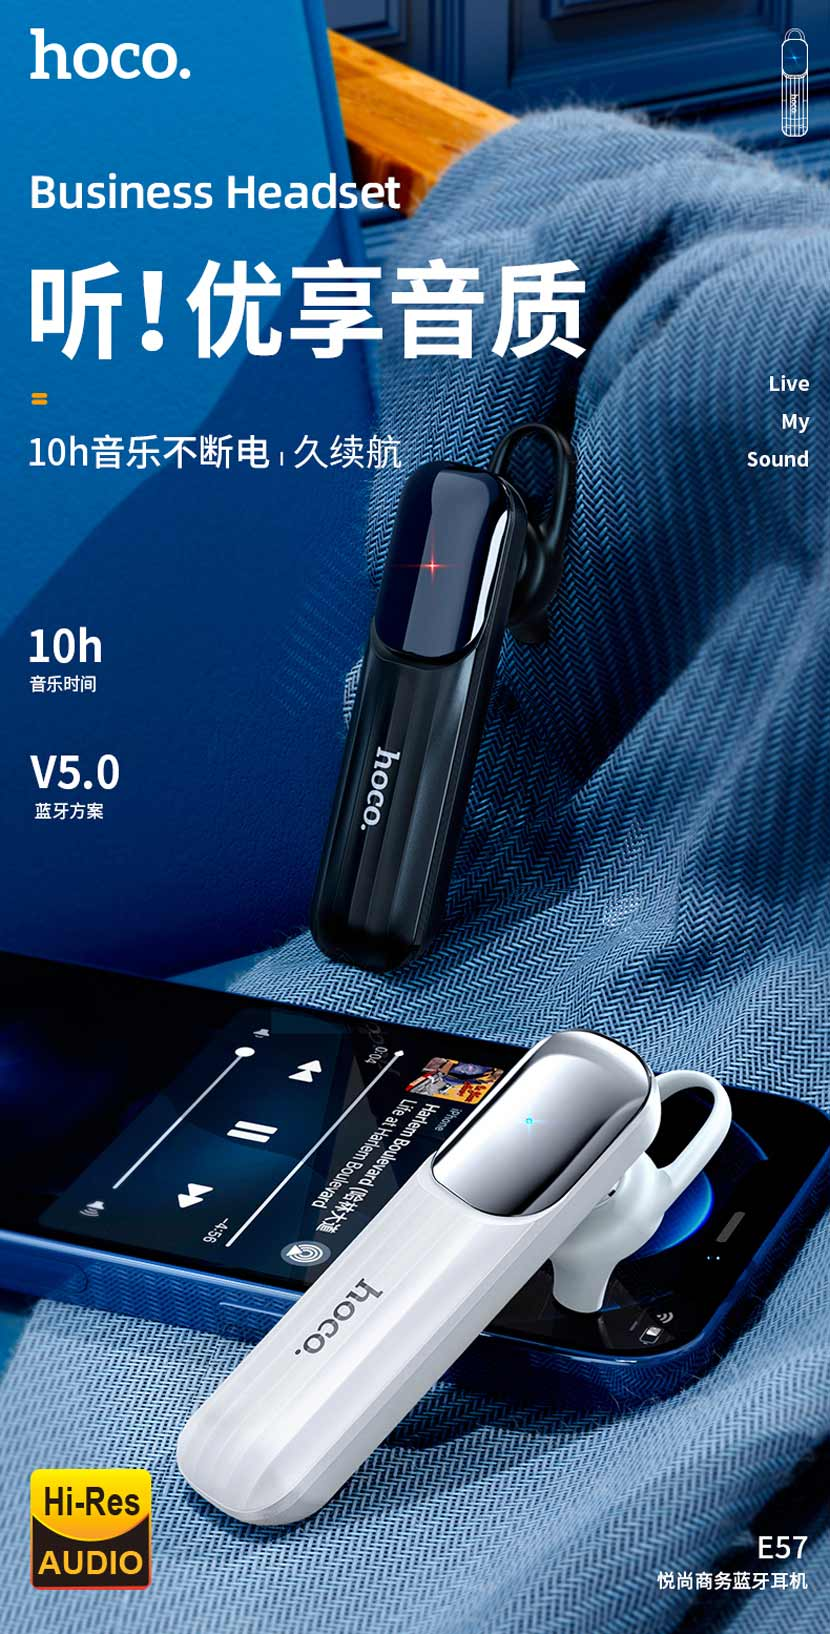 hoco news e57 essential business bt headset cn